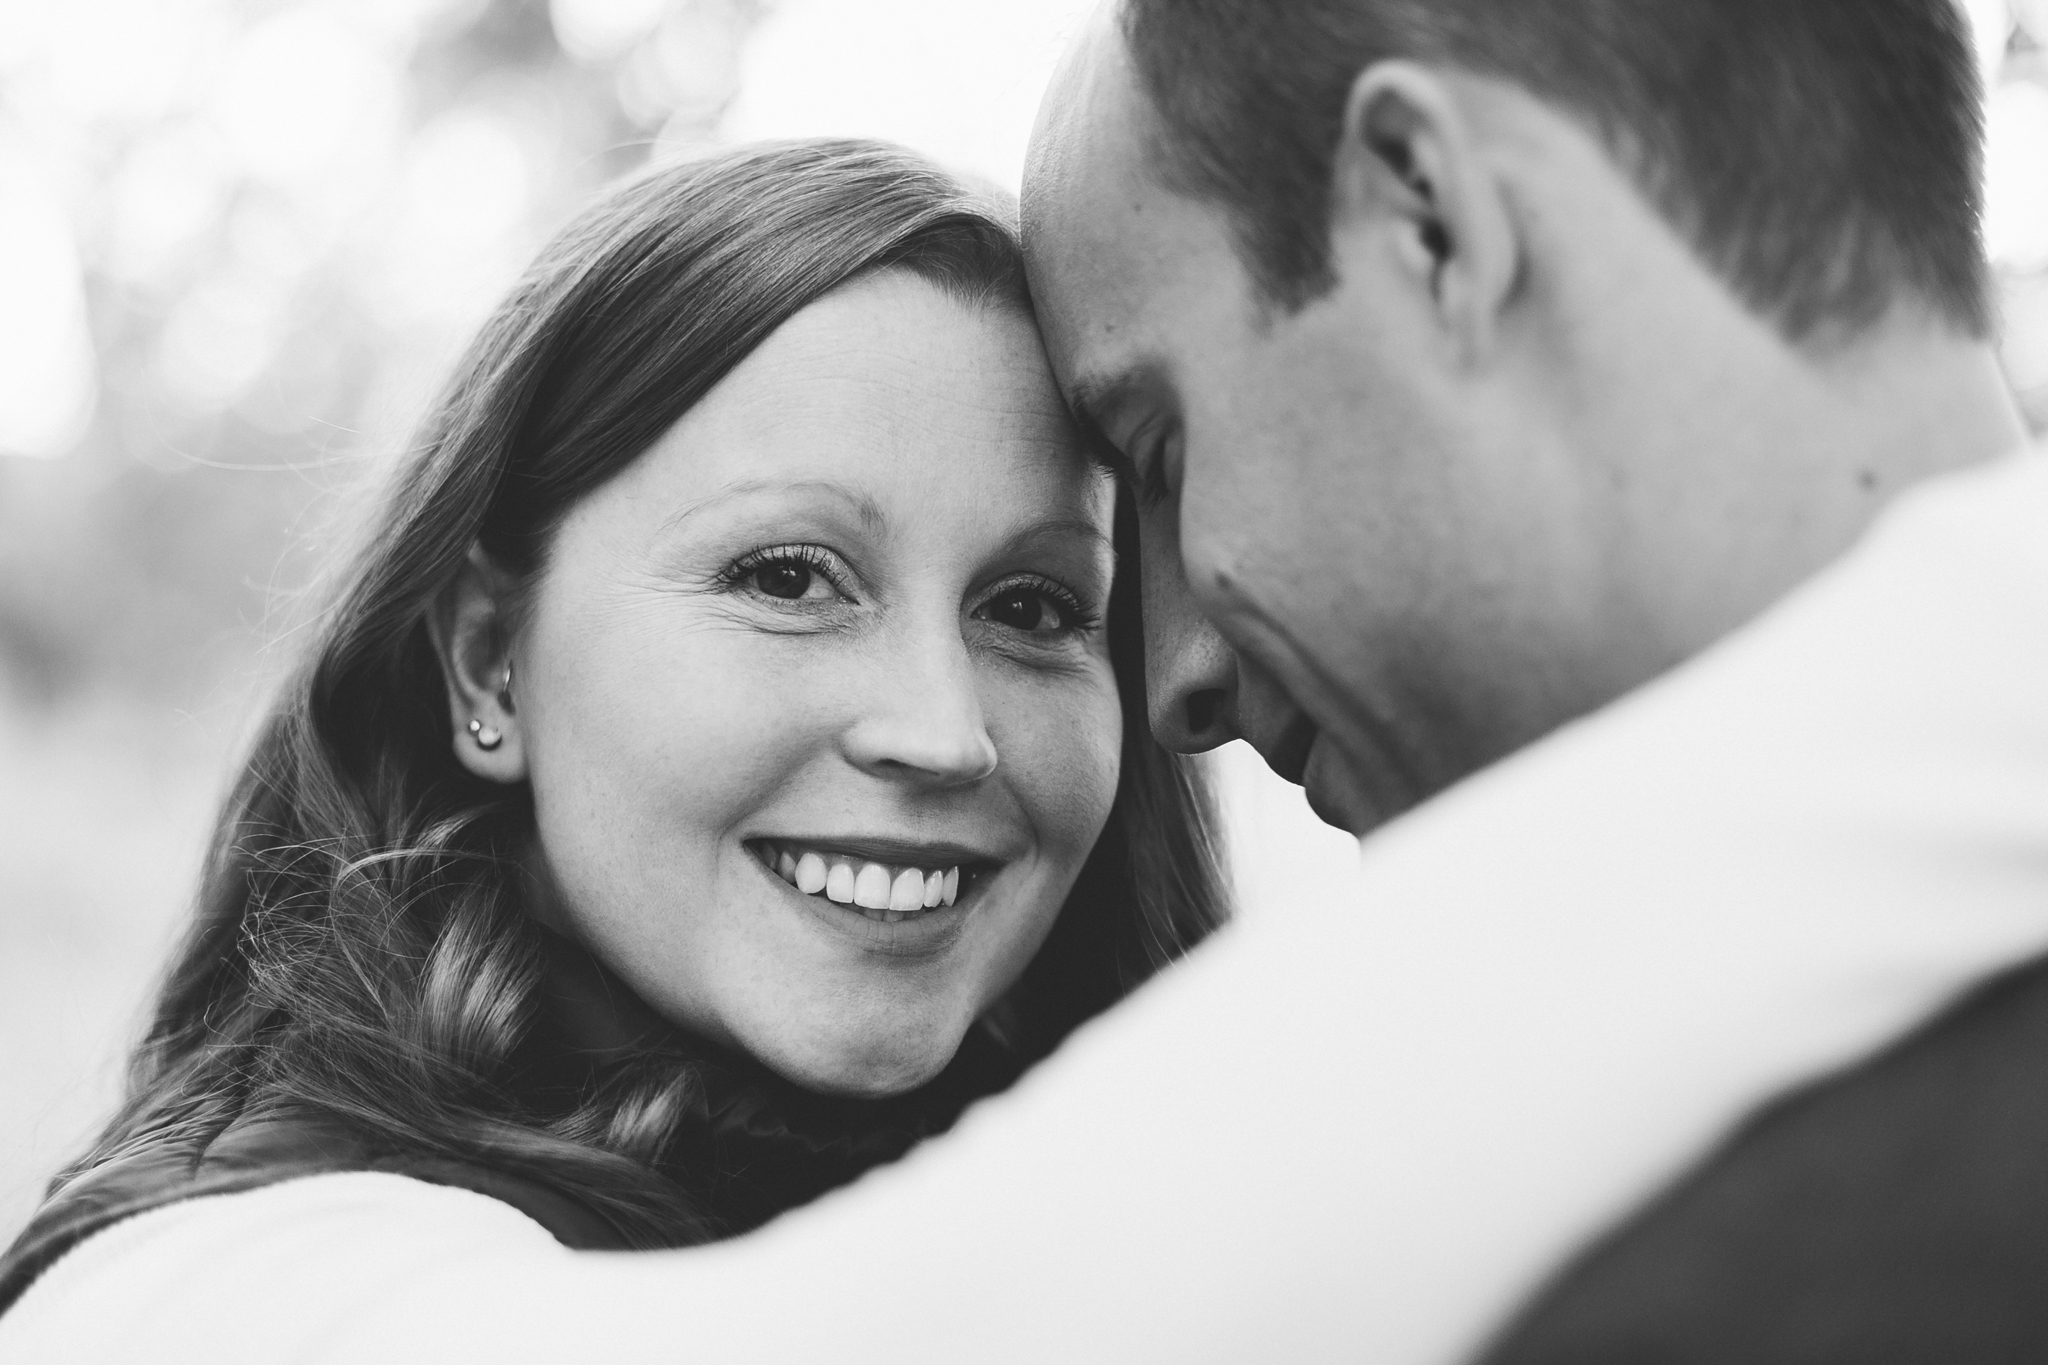 lethbridge-photographer-love-and-be-loved-photography-indian-battle-park-engagement-mike-carmel-photo-image-picture-4.jpg